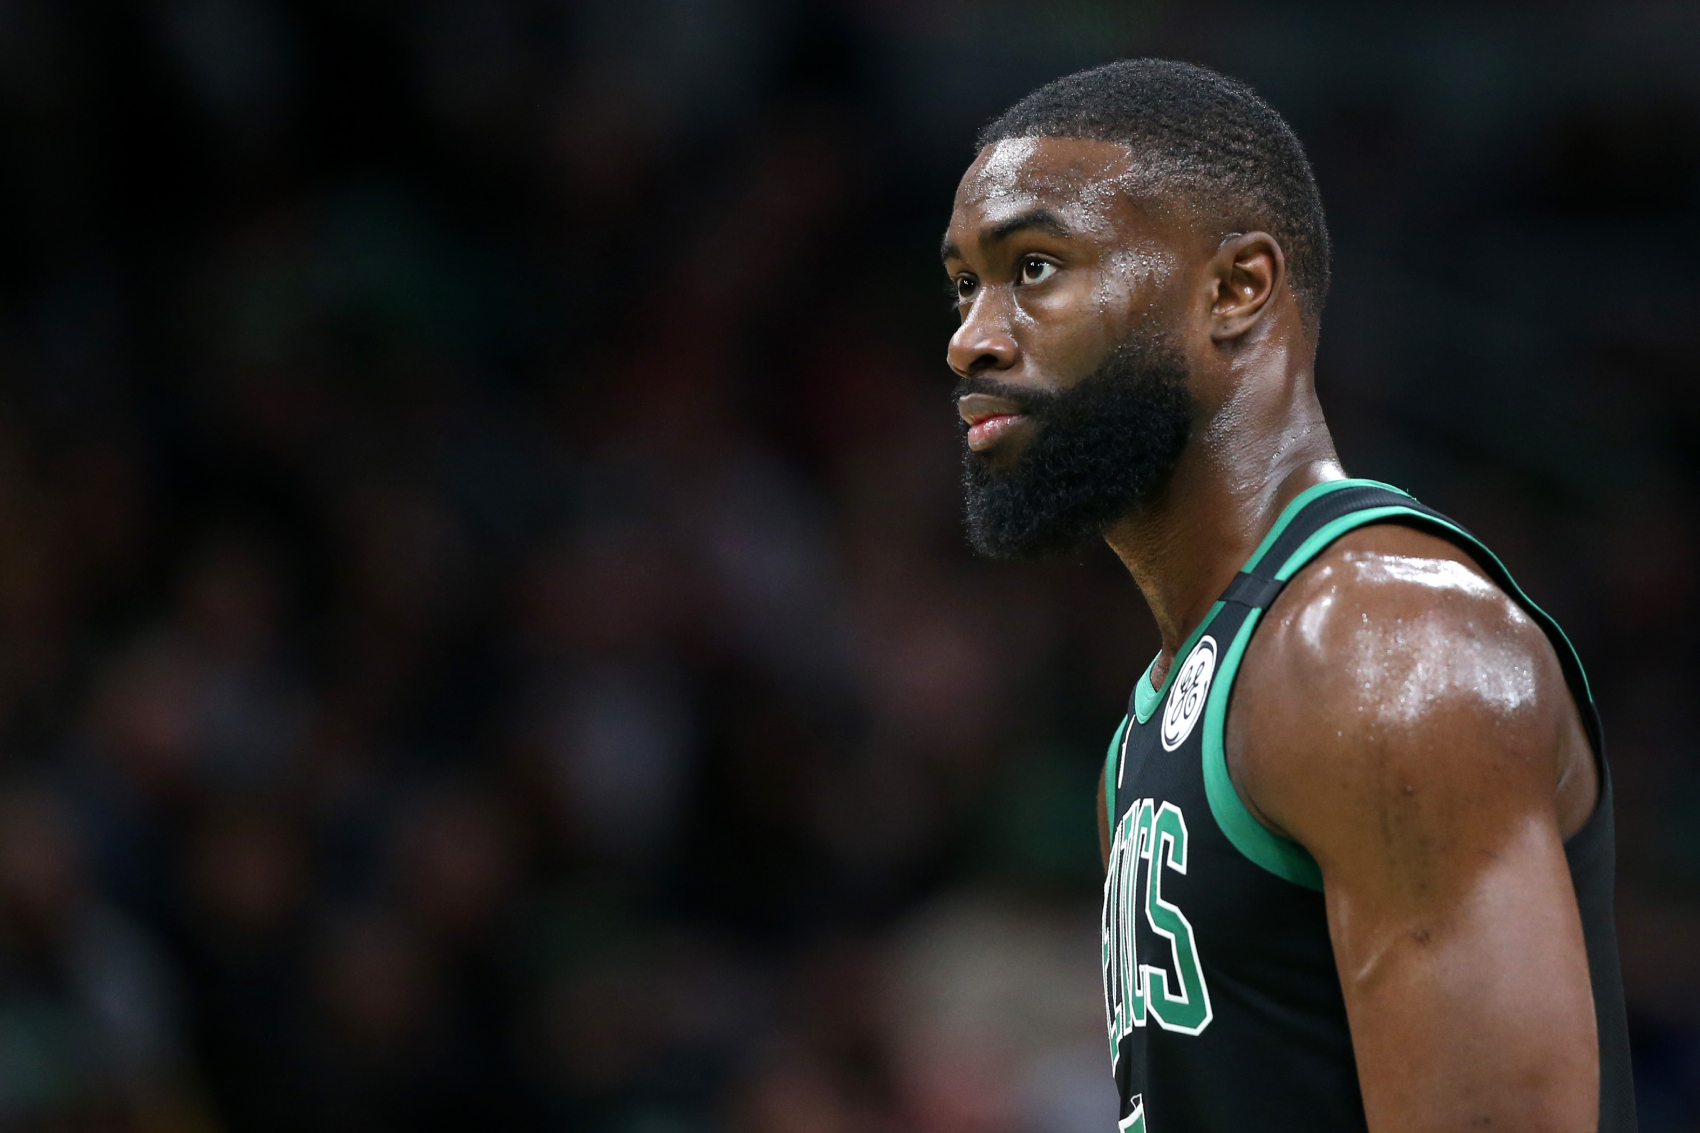 The Boston Celtics lost to the Raptors at the buzzer in Game 3 of the Eastern Conference Semifinals. After the game, Jaylen Brown was pissed.